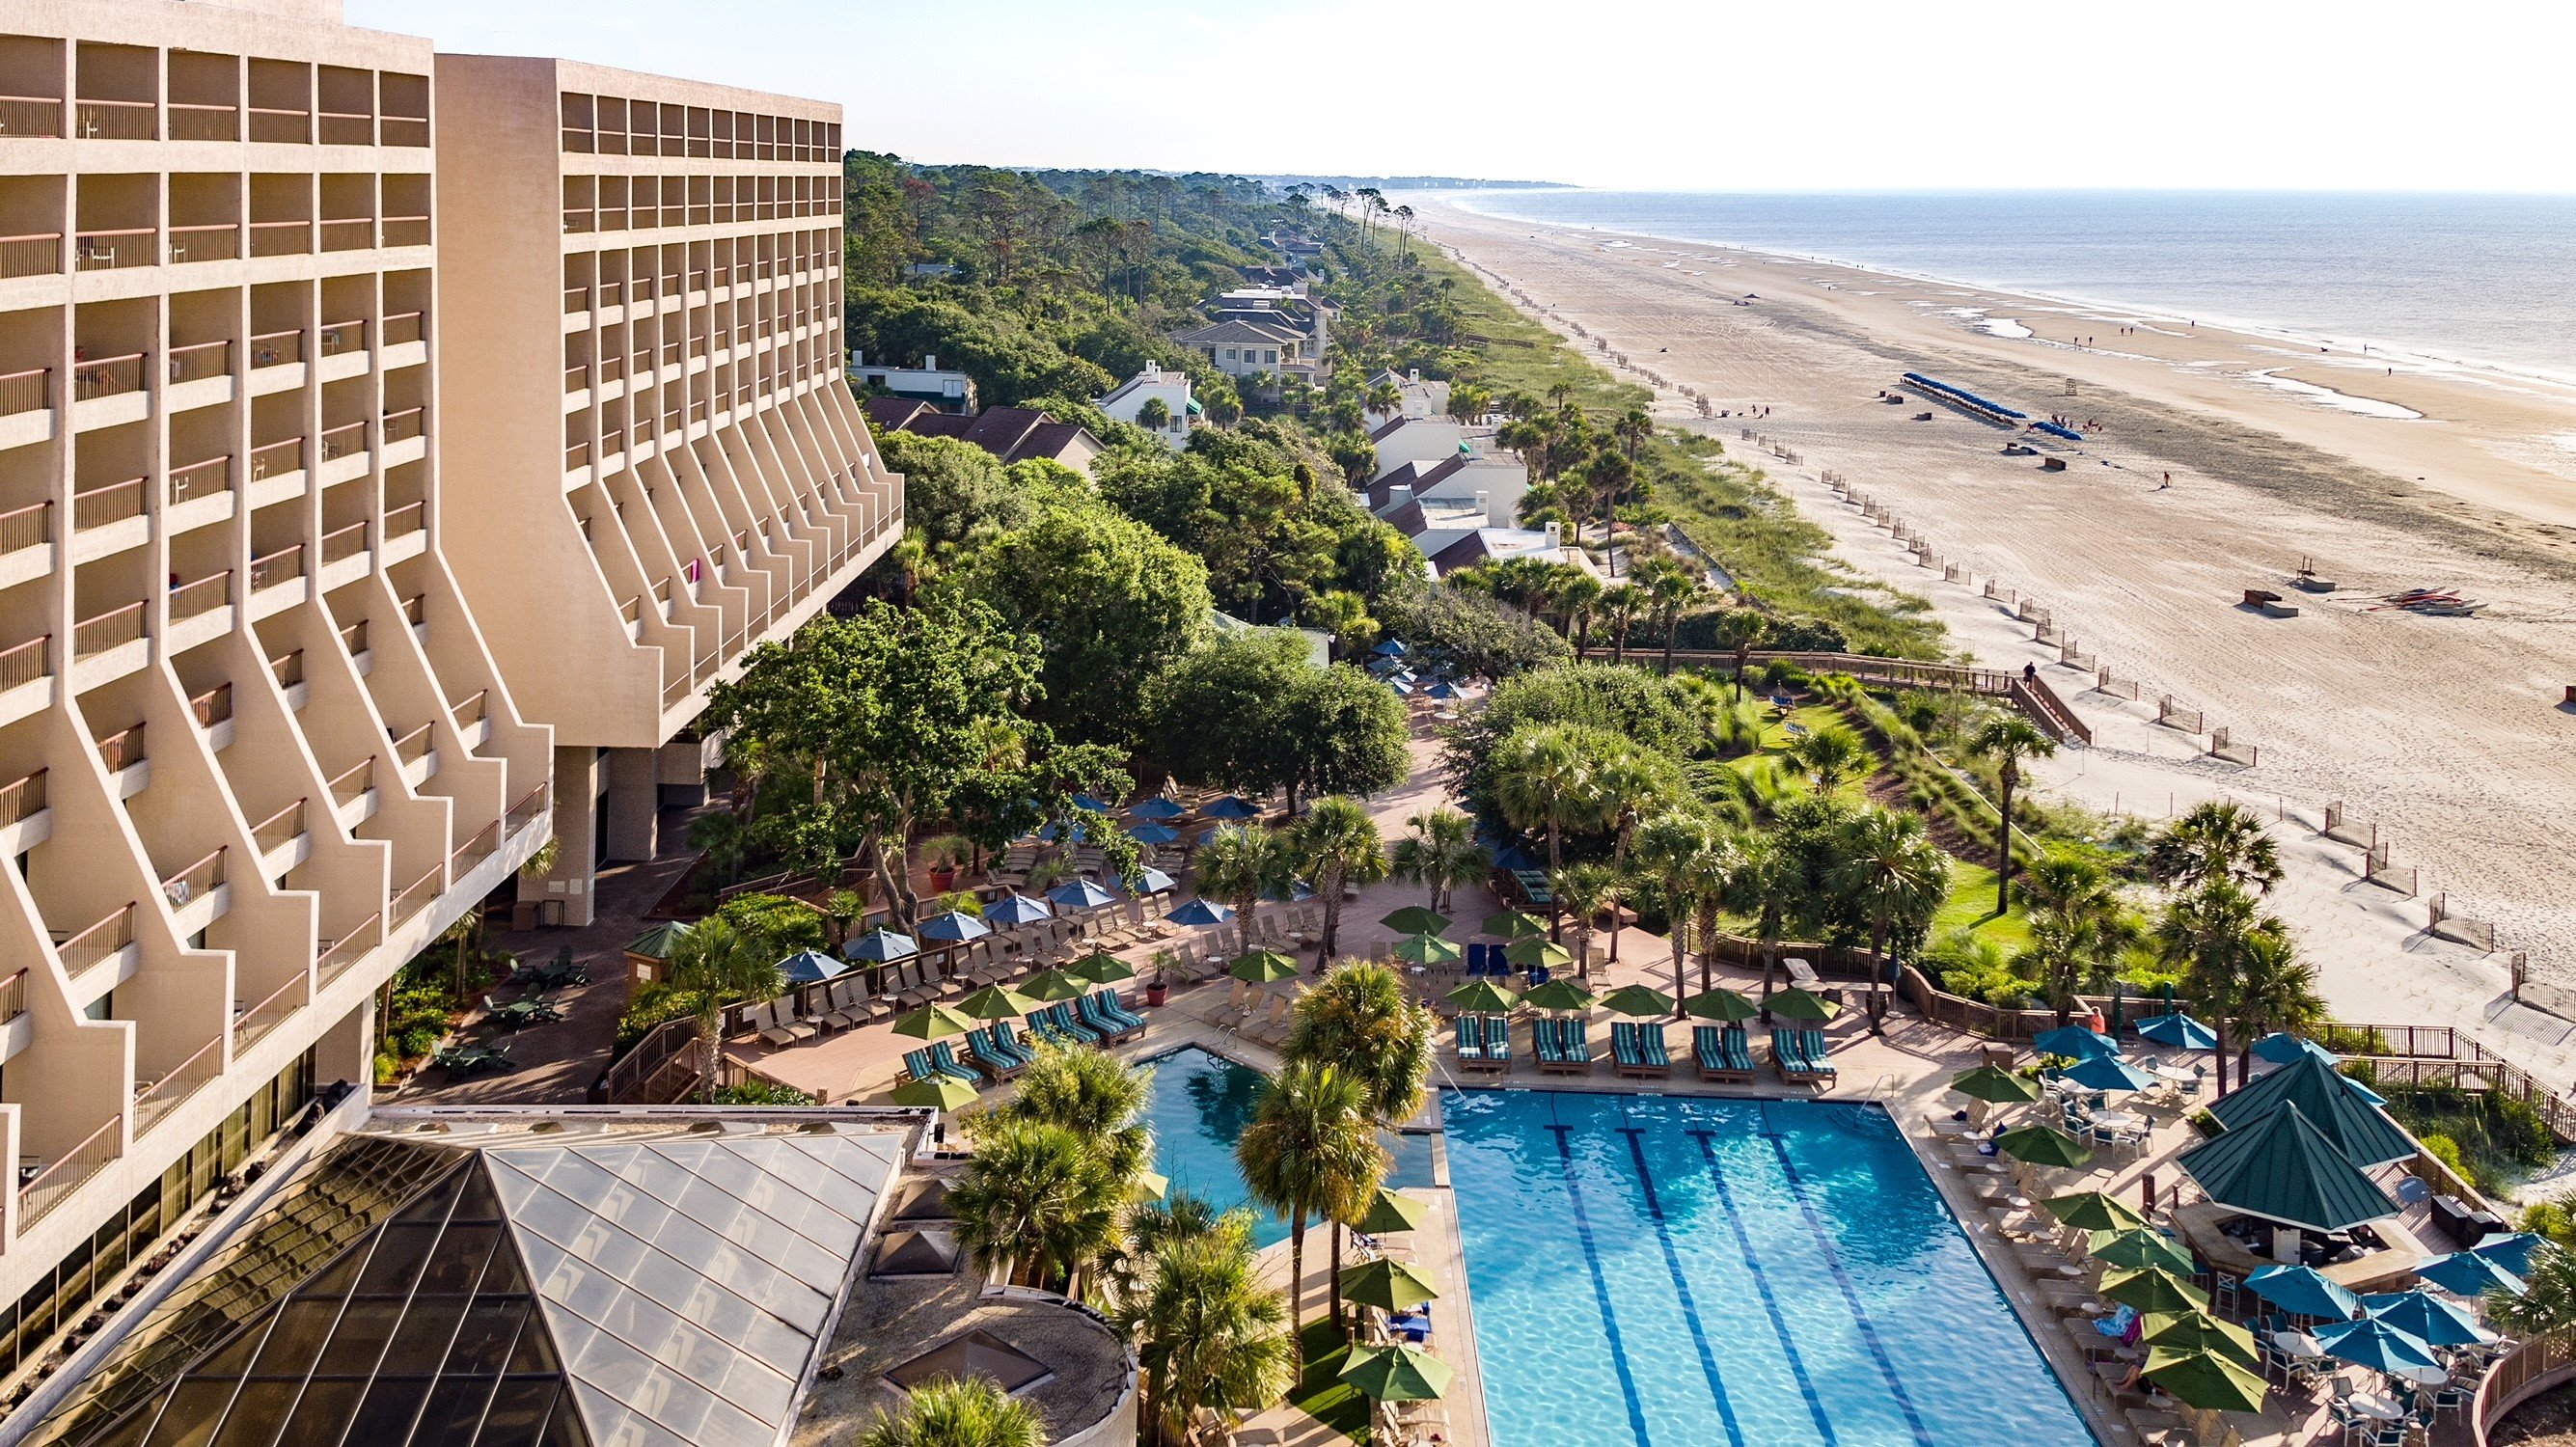 Photo of the Hilton Head Marriott Resort & Spa.